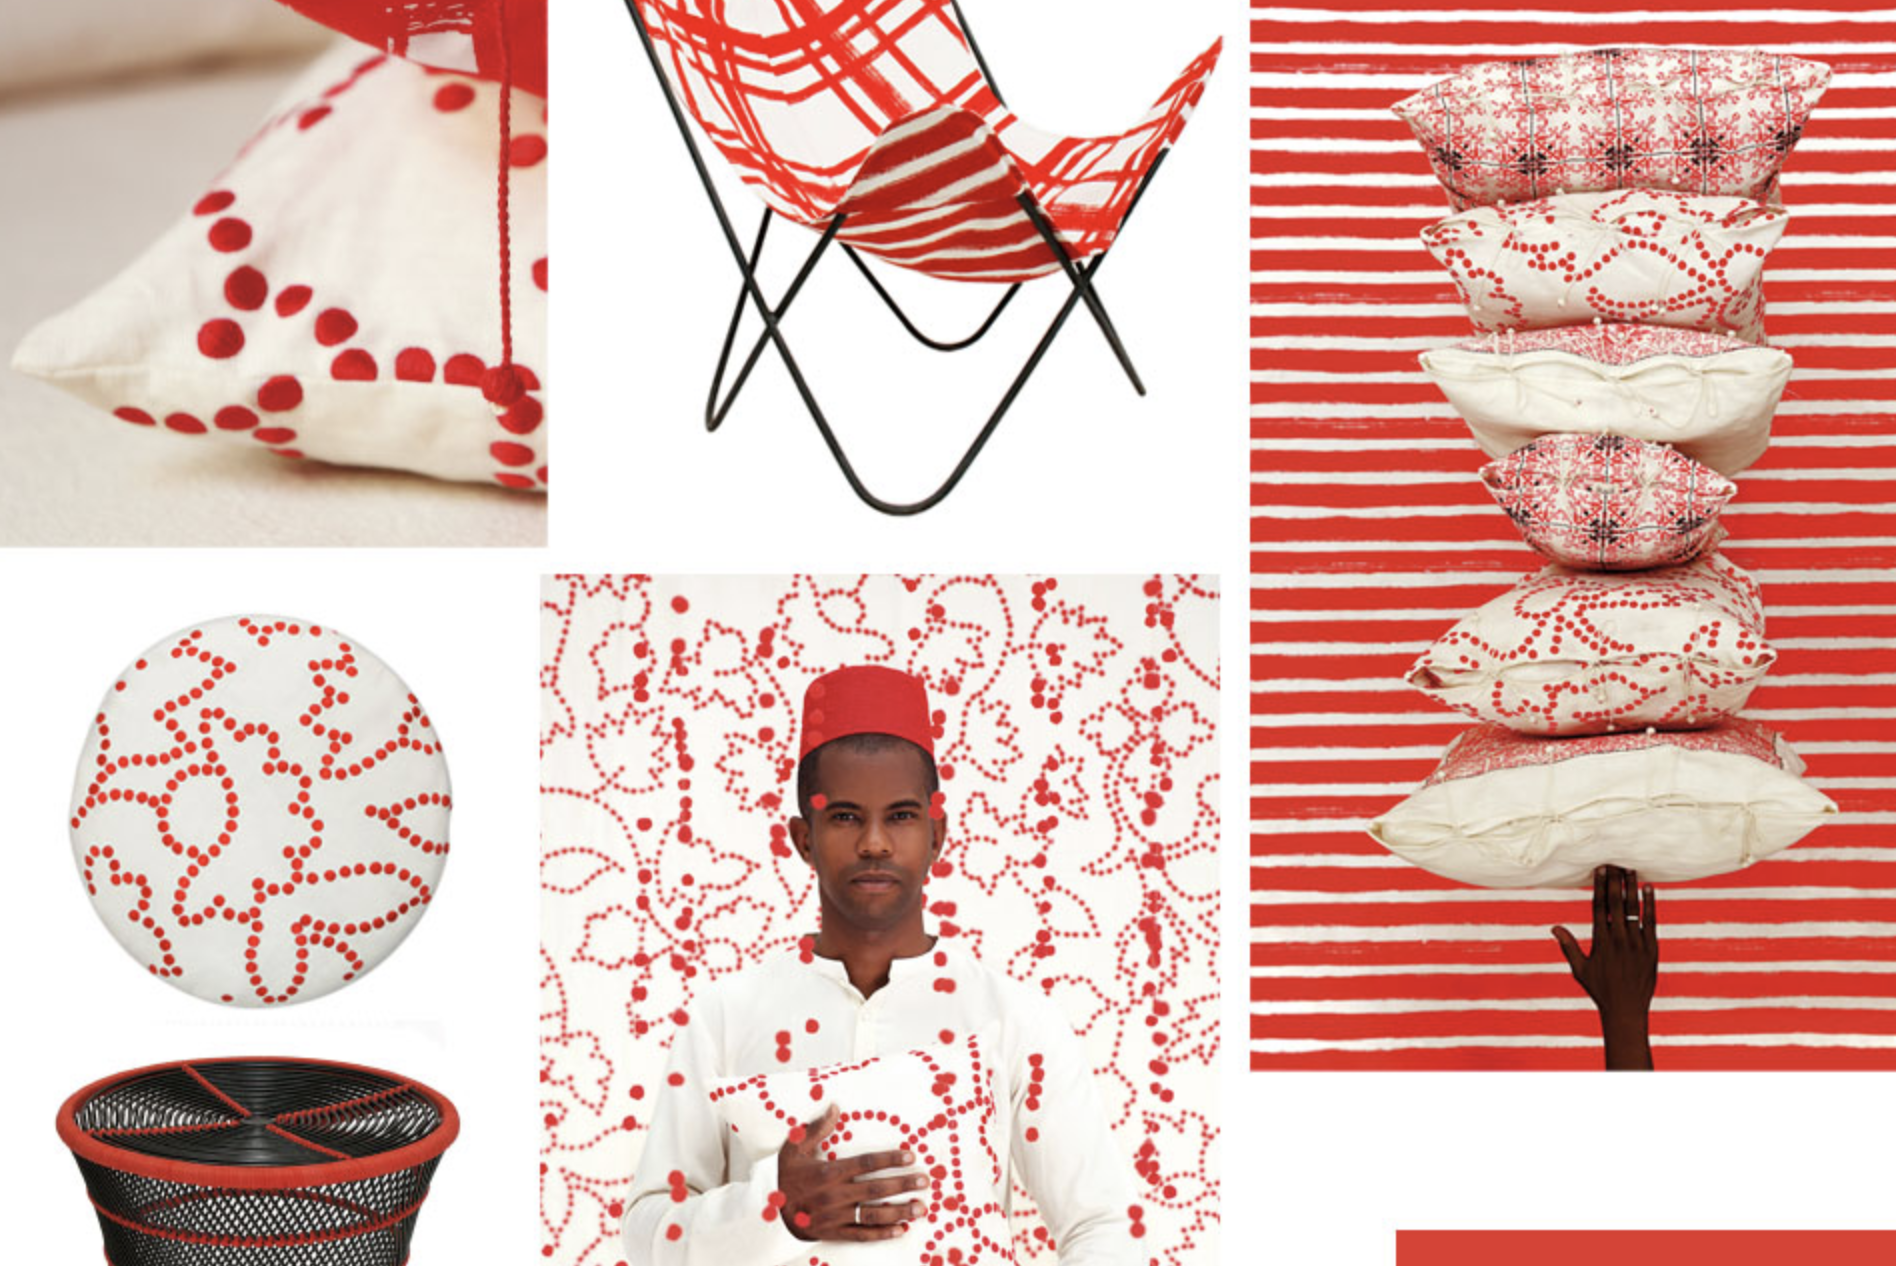 no mad red collection artdirection valeriebarkowski